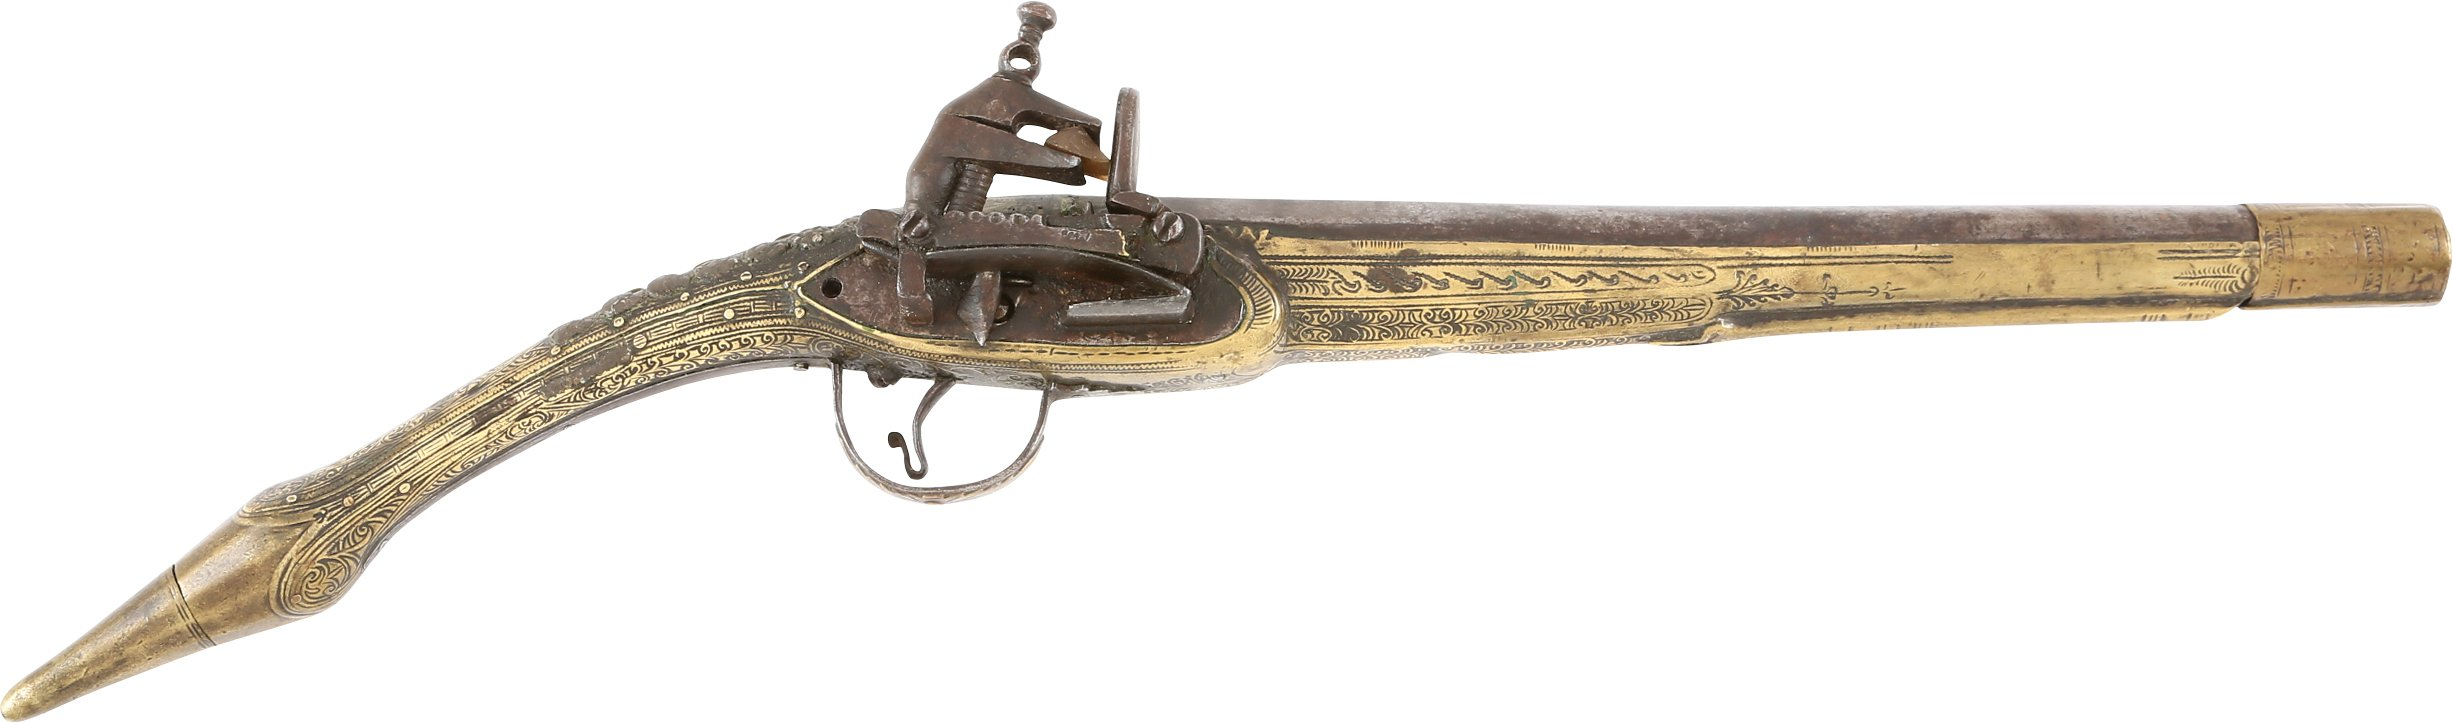 GOOD ALBANIAN (OTTOMAN) MIQUELET PISTOL C.1800-EARLY 19th CENTURY